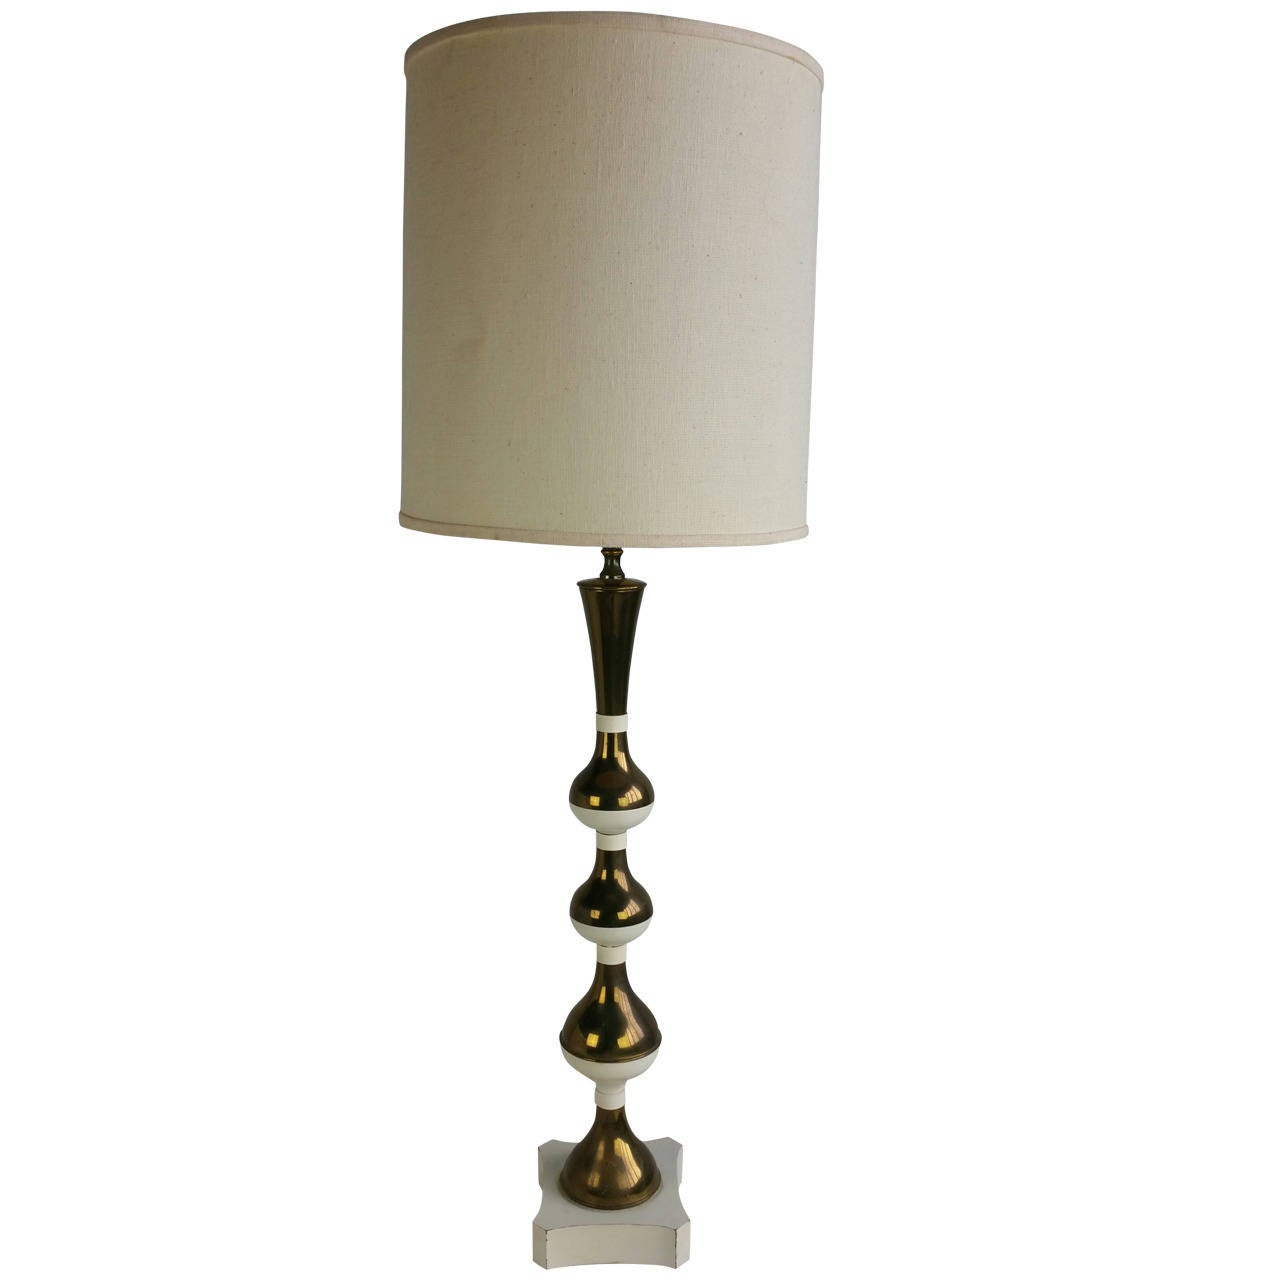 Dramatic Brass and White Table Lamp in the Modernist, Hollywood Regency Style